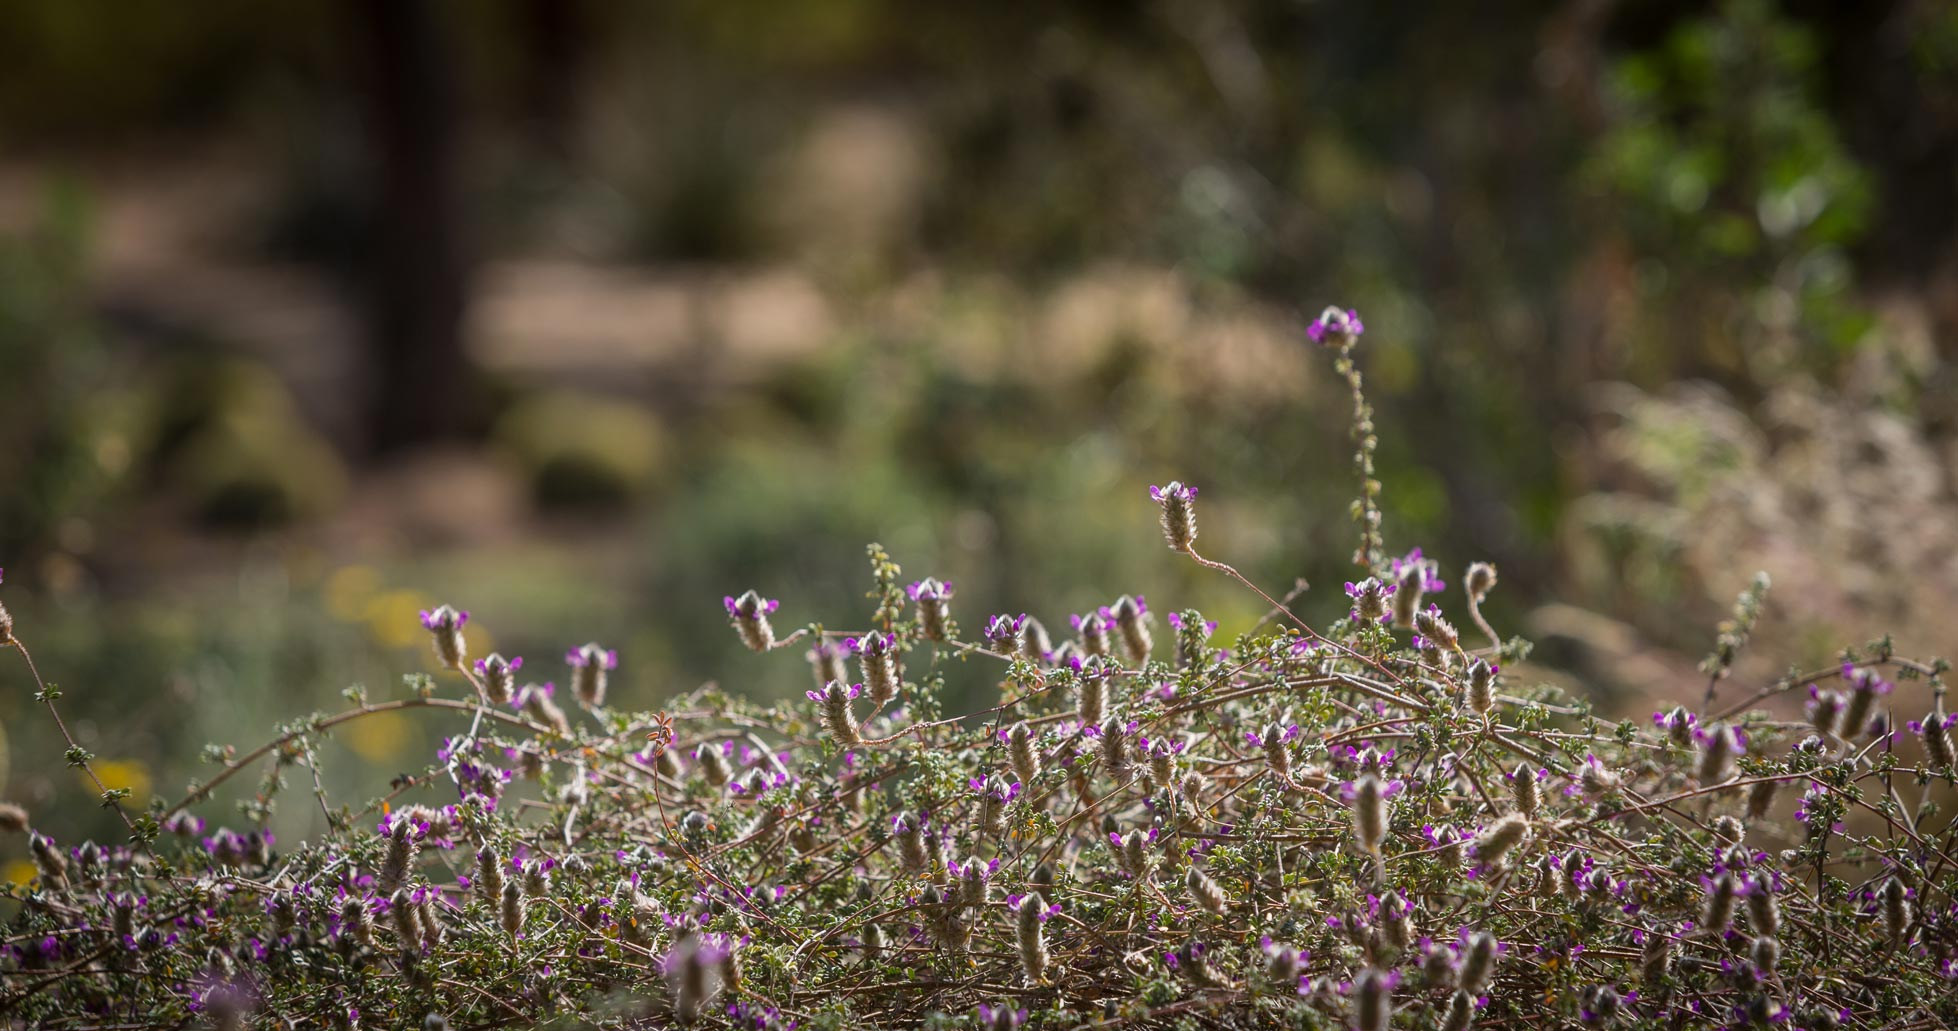 A close-up of the fuzzy purple flowers of the Trailing Smokebush.